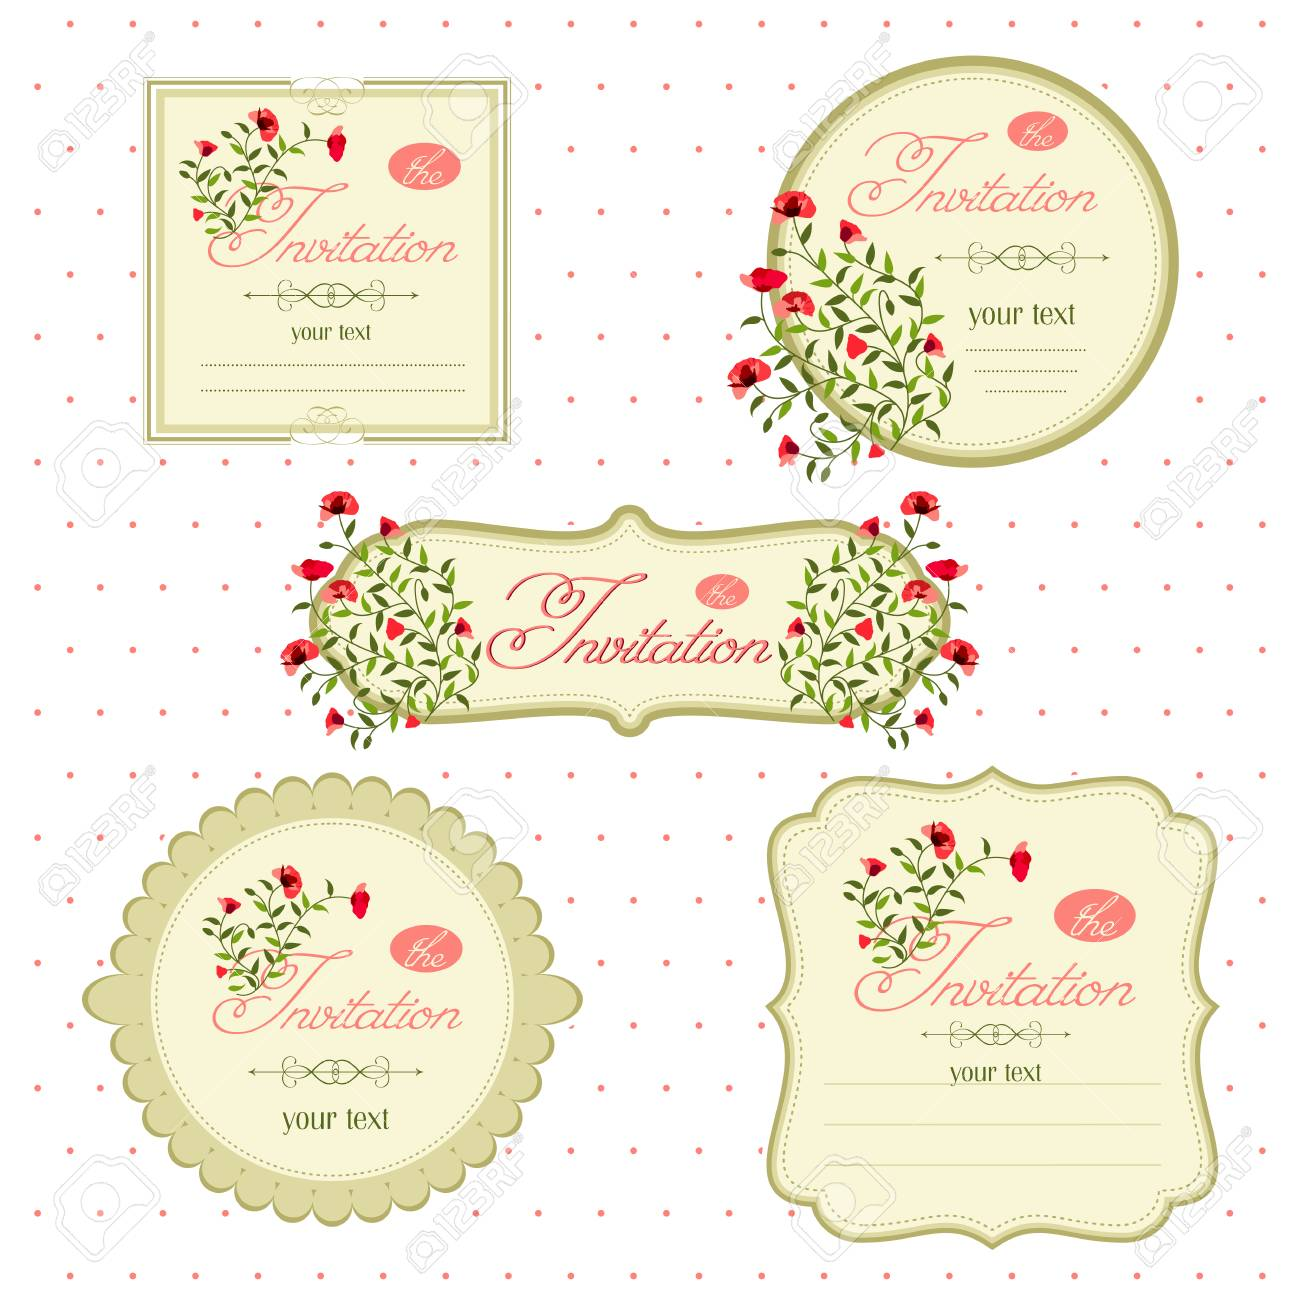 Floral Invitation Cards For An Event Vector Image Of Invitation